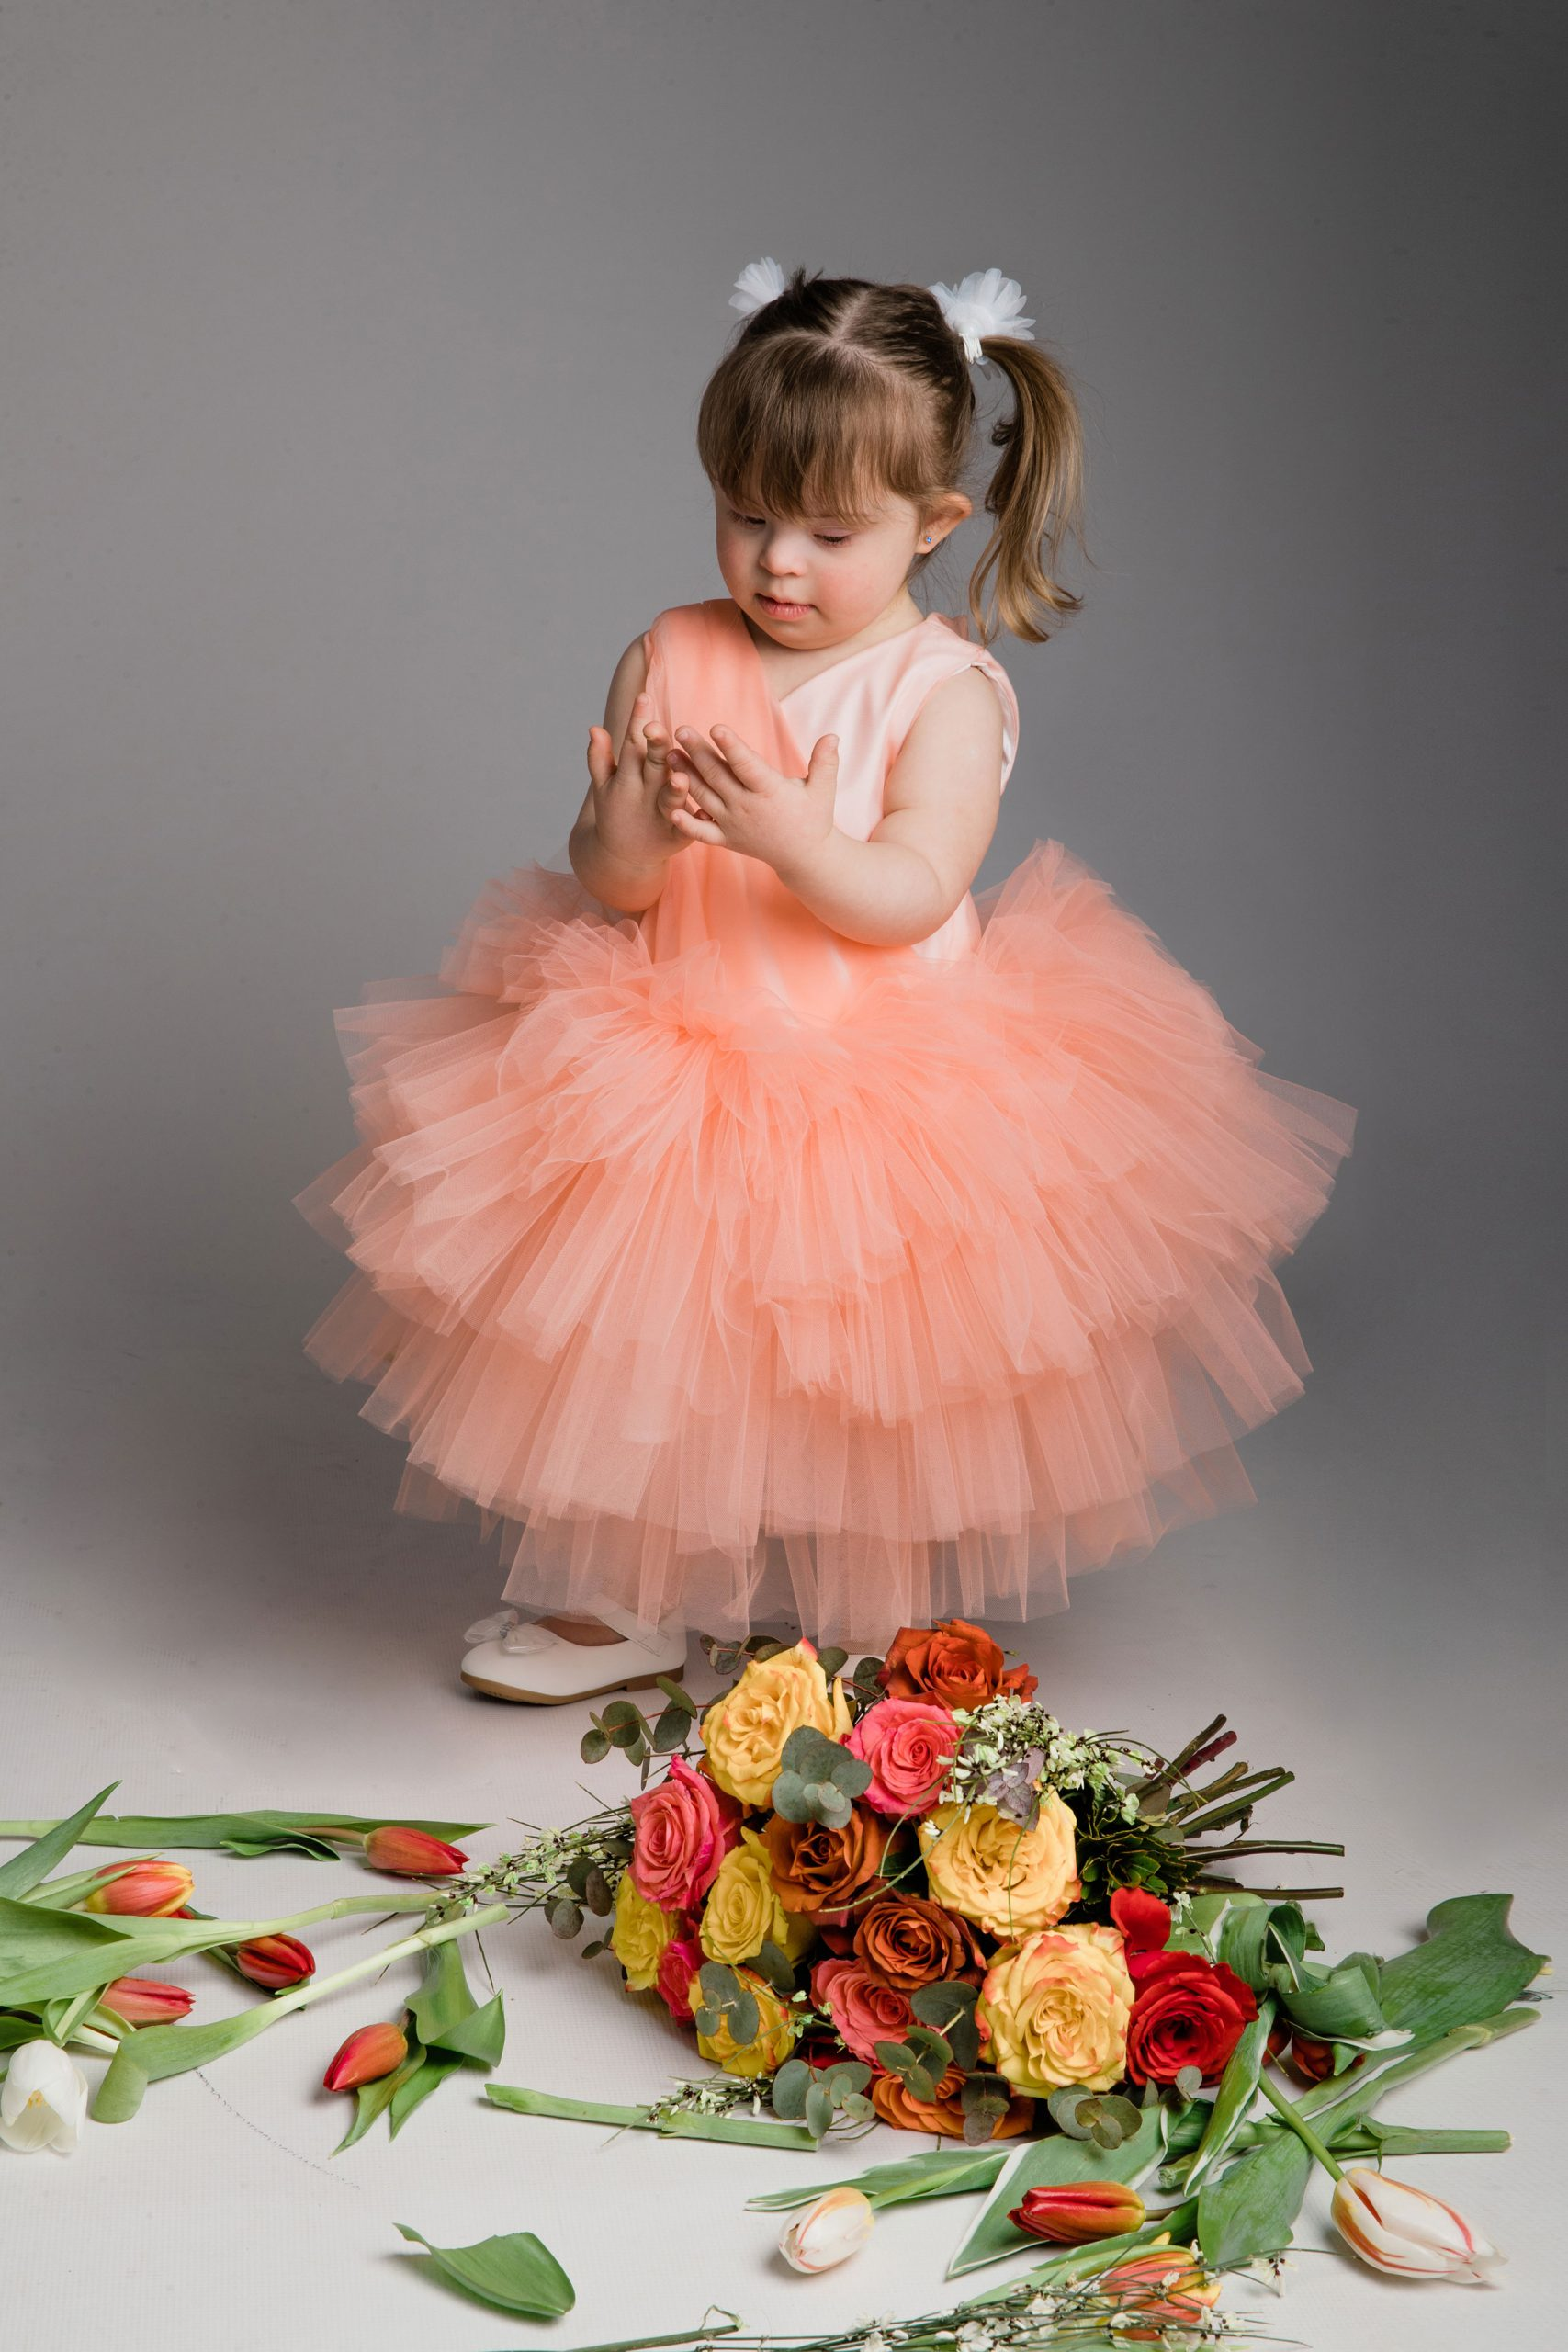 Girl with Down Syndrome studio photography